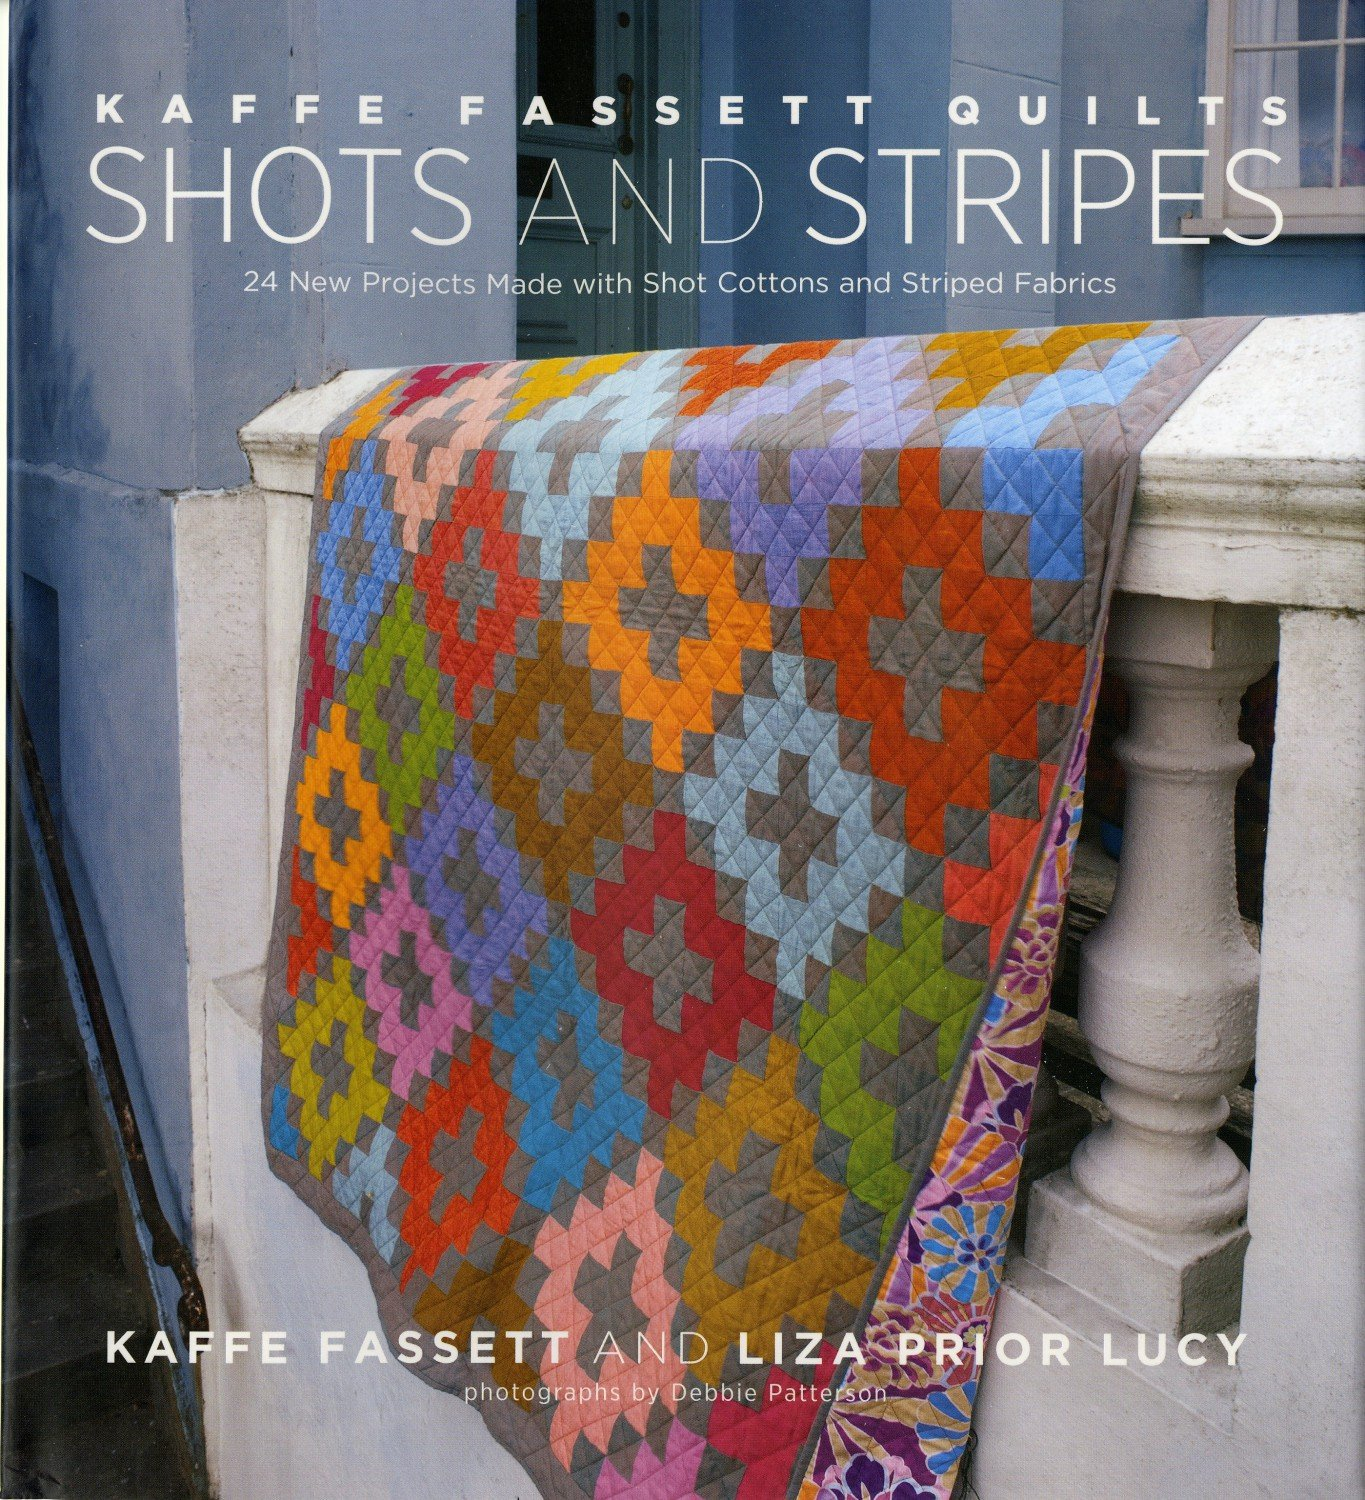 Kaffe Fassett Quilts: Shots and Stripes  - Hardcover